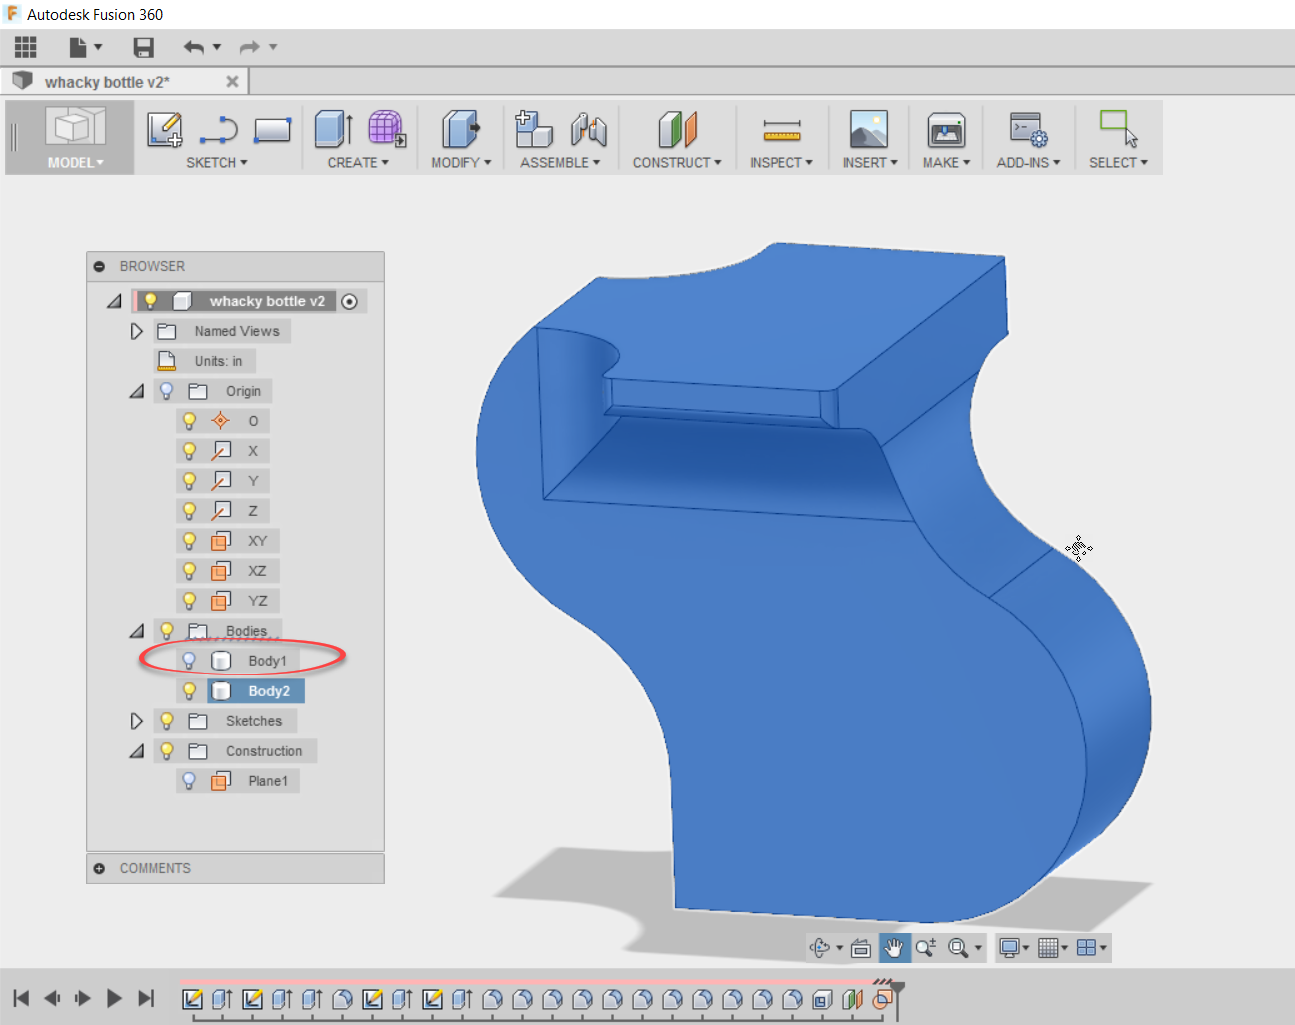 Finding Internal Volumes Using Autodesk Fusion 360 - A Nice